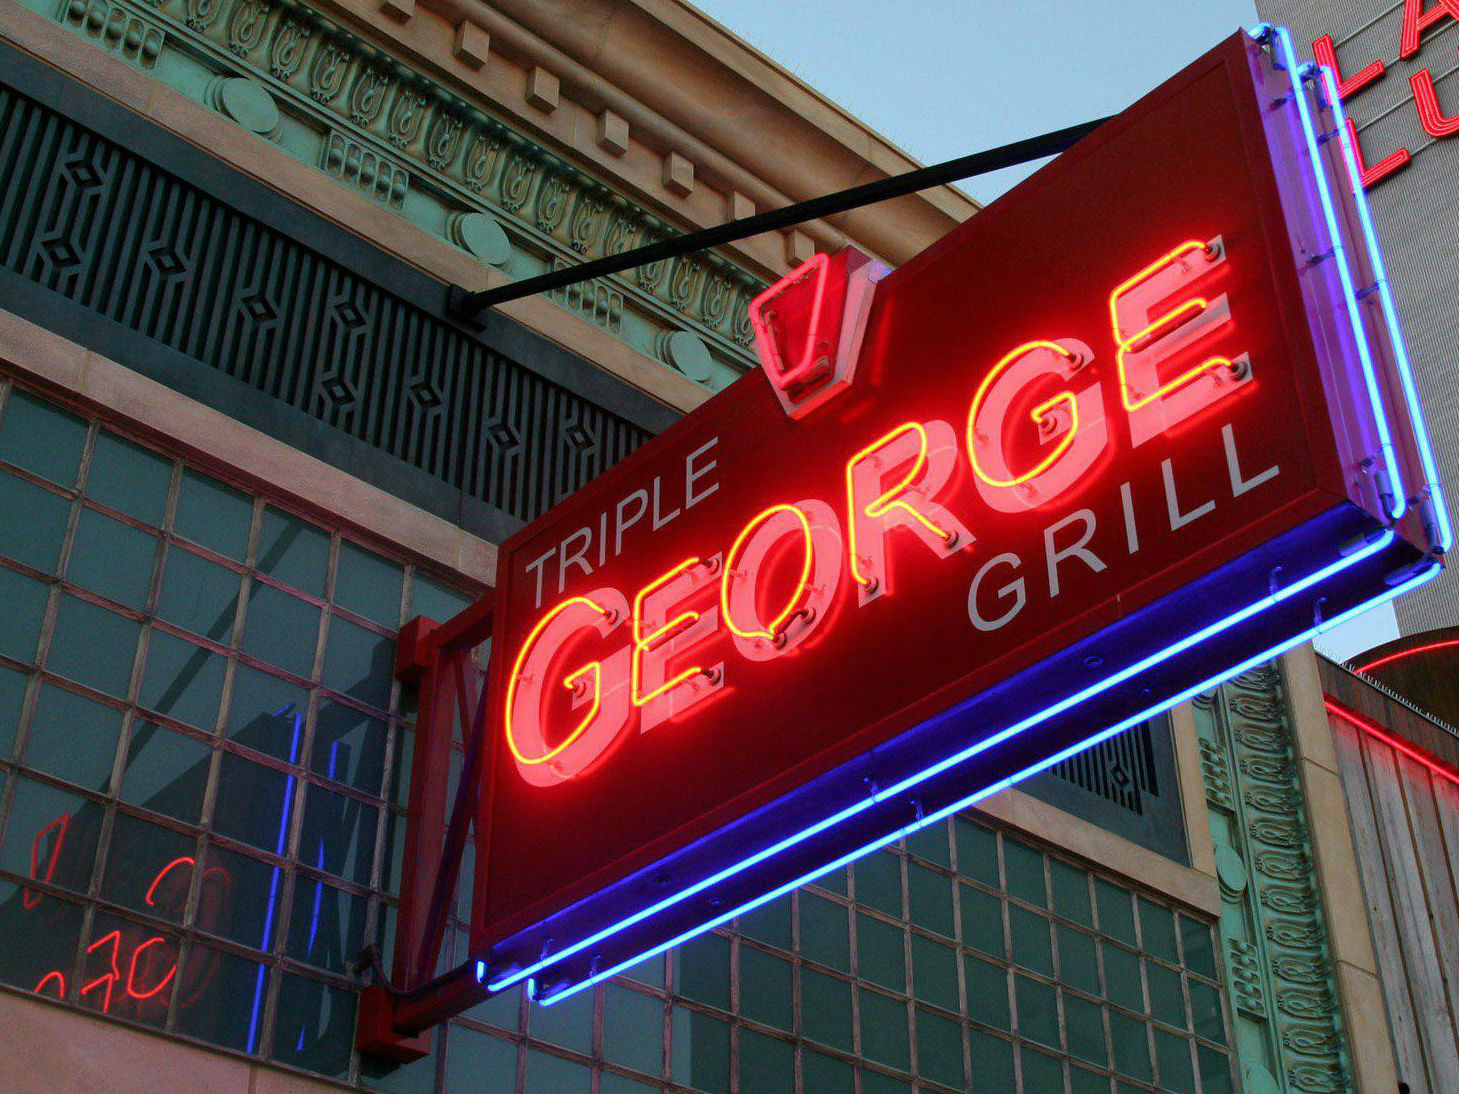 Triple George Grill photo